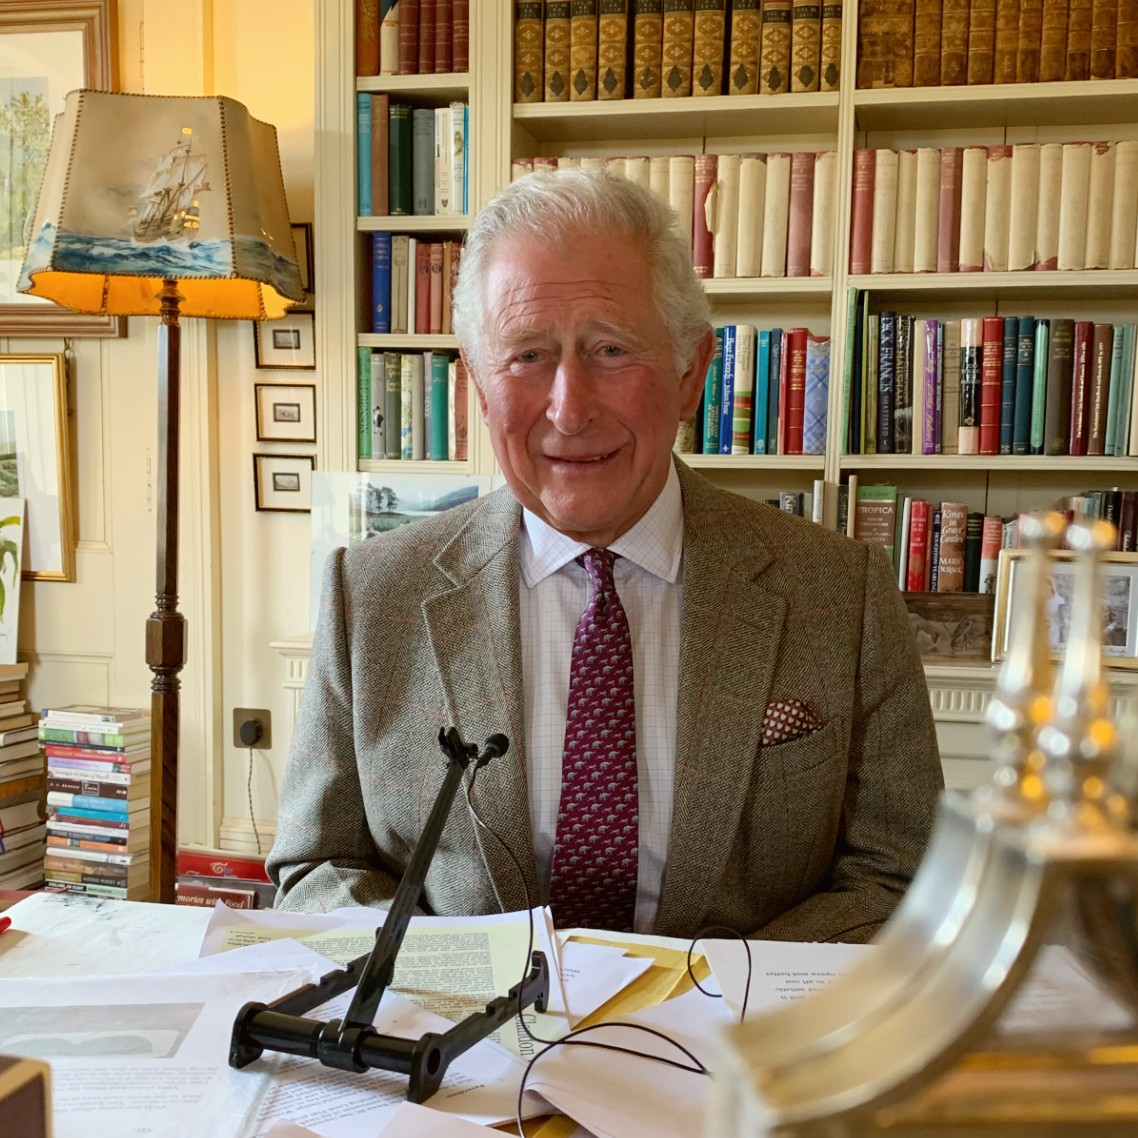 Tonight at 8pm, the first of two special programmes on @ClassicFM, featuring The Prince of Wales, will be aired. Each piece of music, chosen personally by His Royal Highness, has been recorded by a range of his musical patronages across the UK.